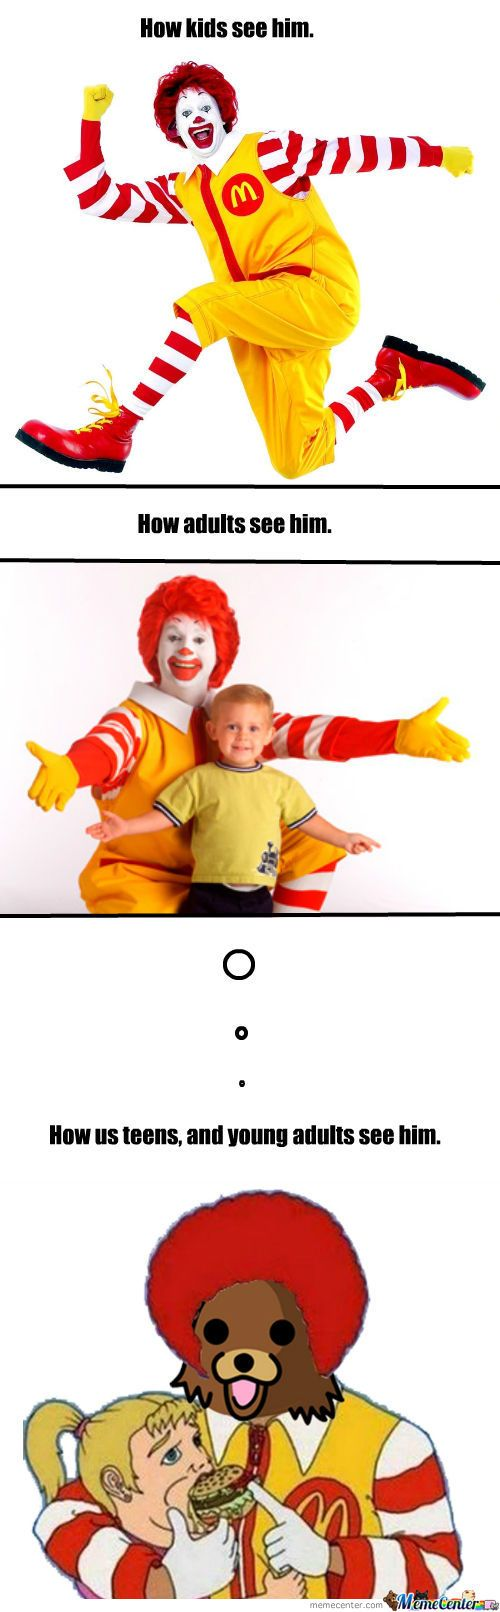 Ronald McDonald | Ronald Mcdonald. - Meme Center